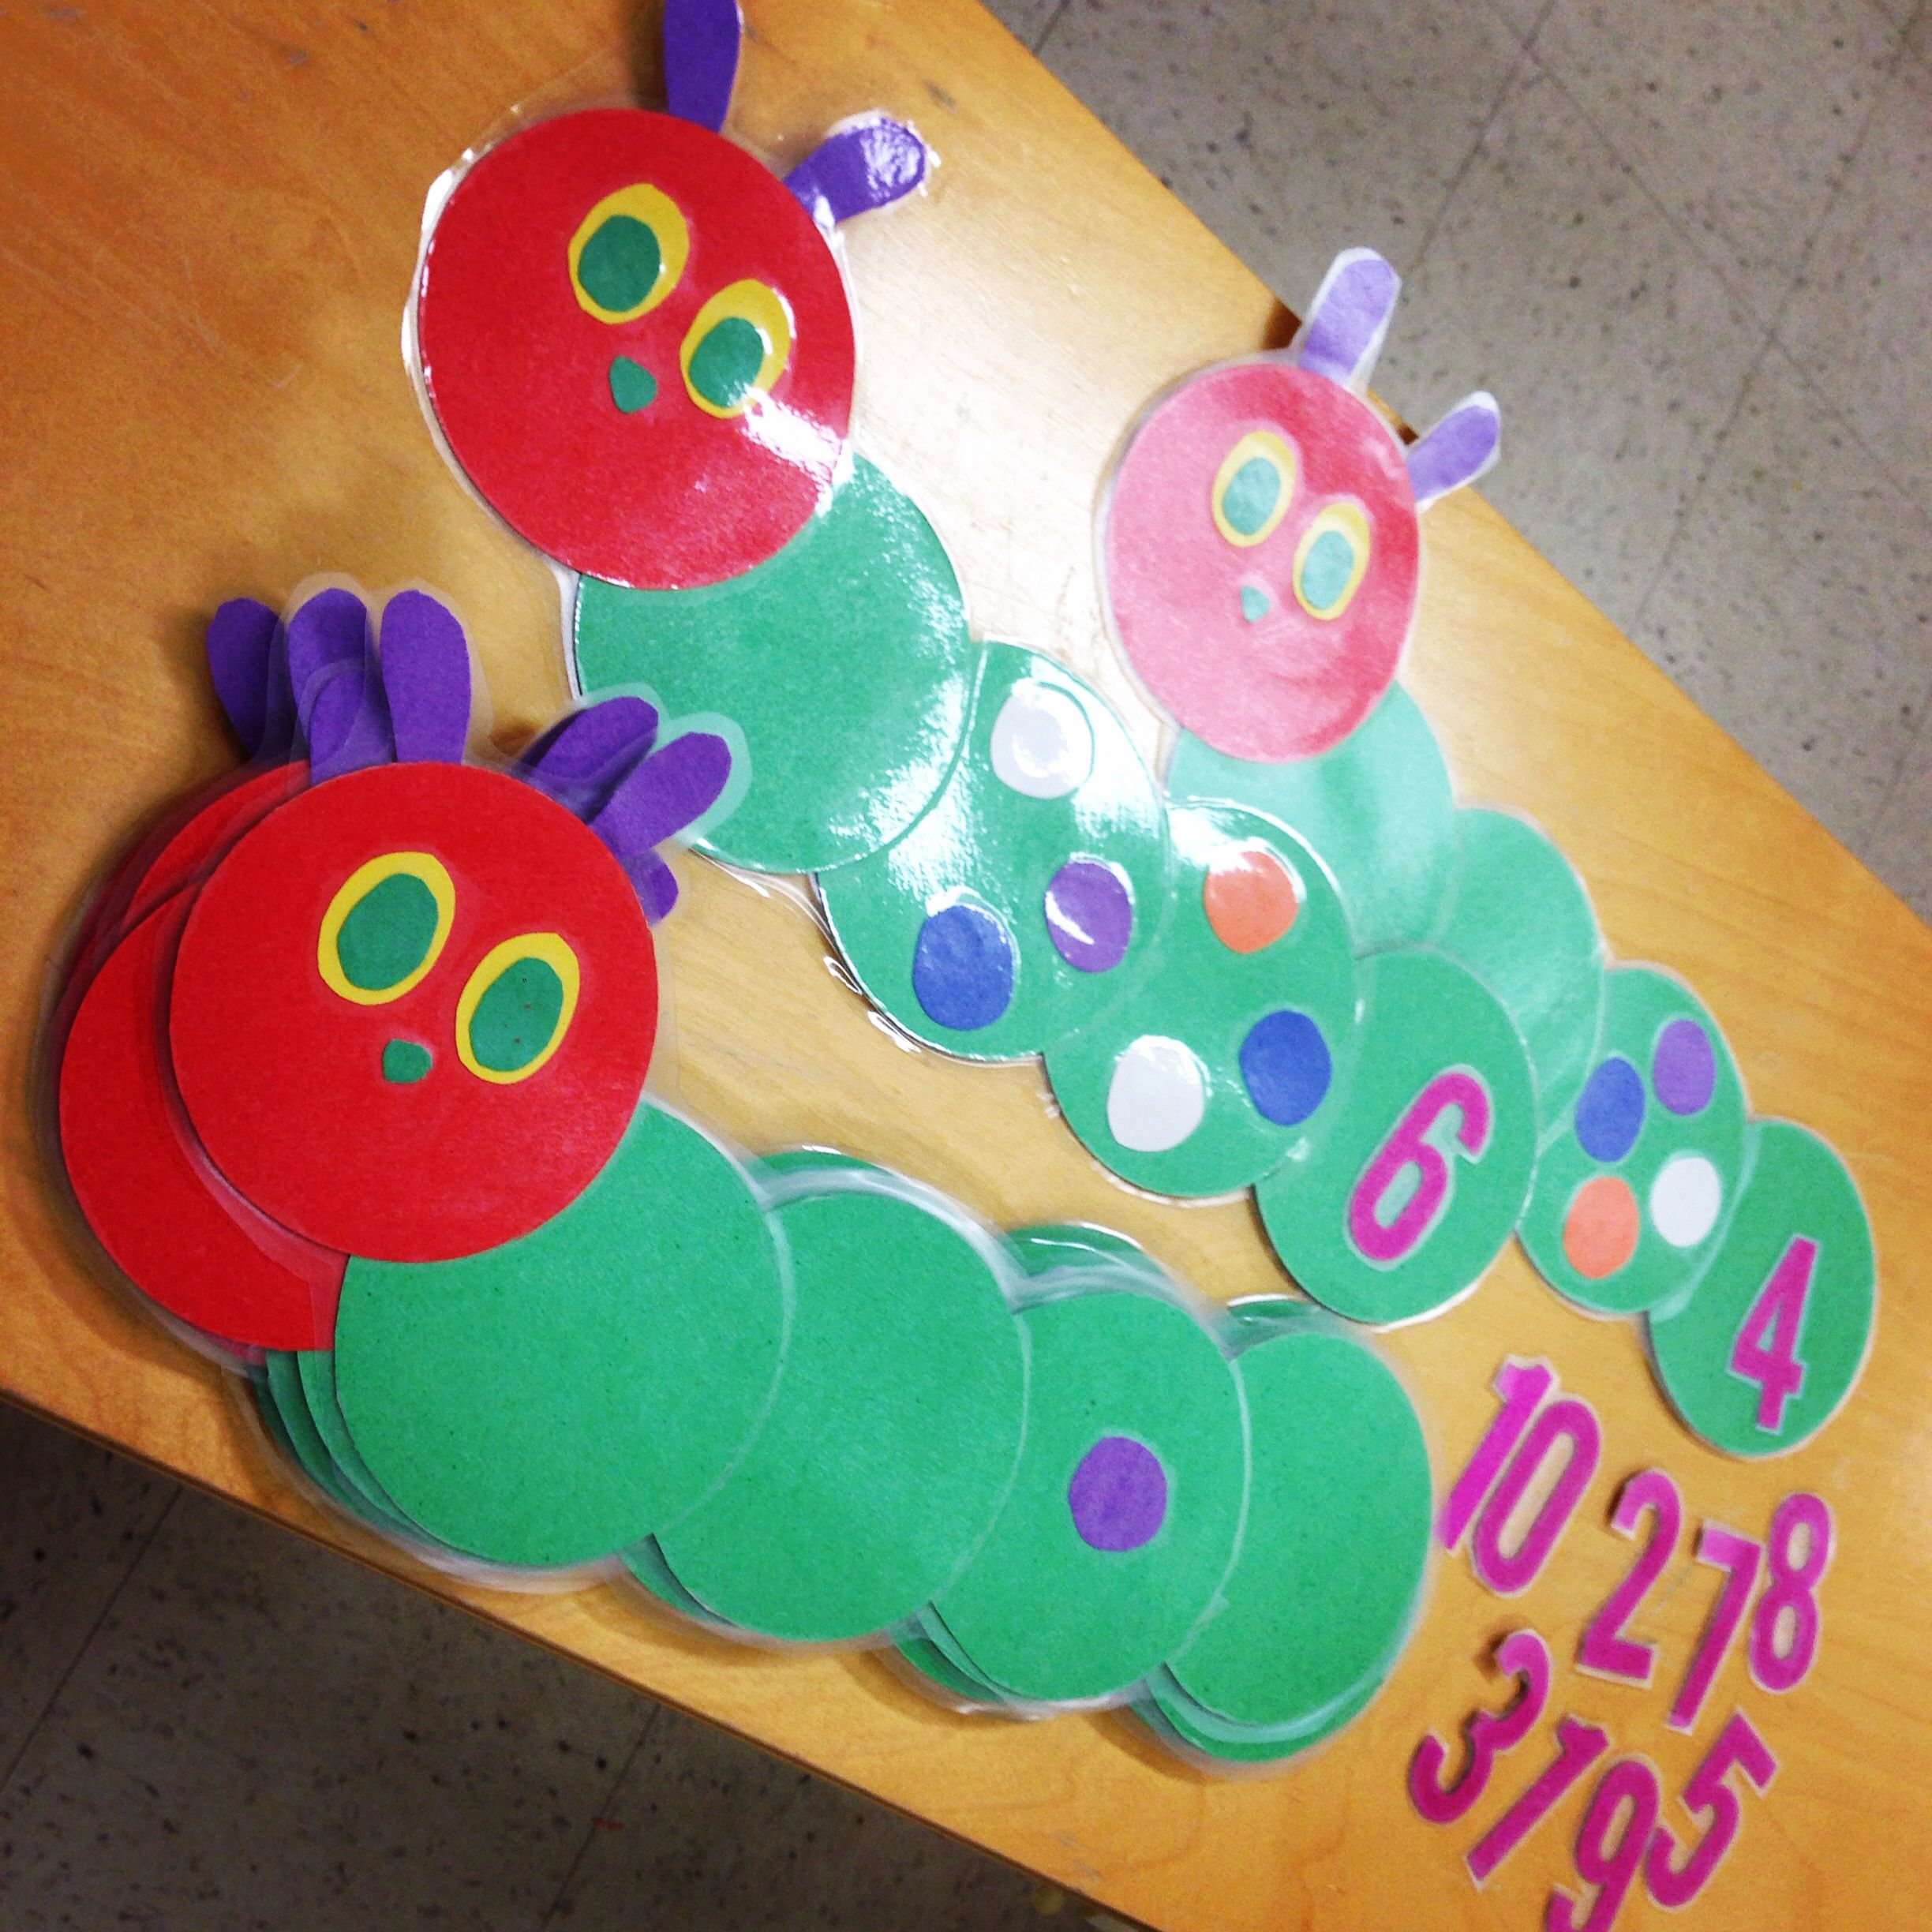 A Very Hungry Caterpillar Math Game Count The Dots And